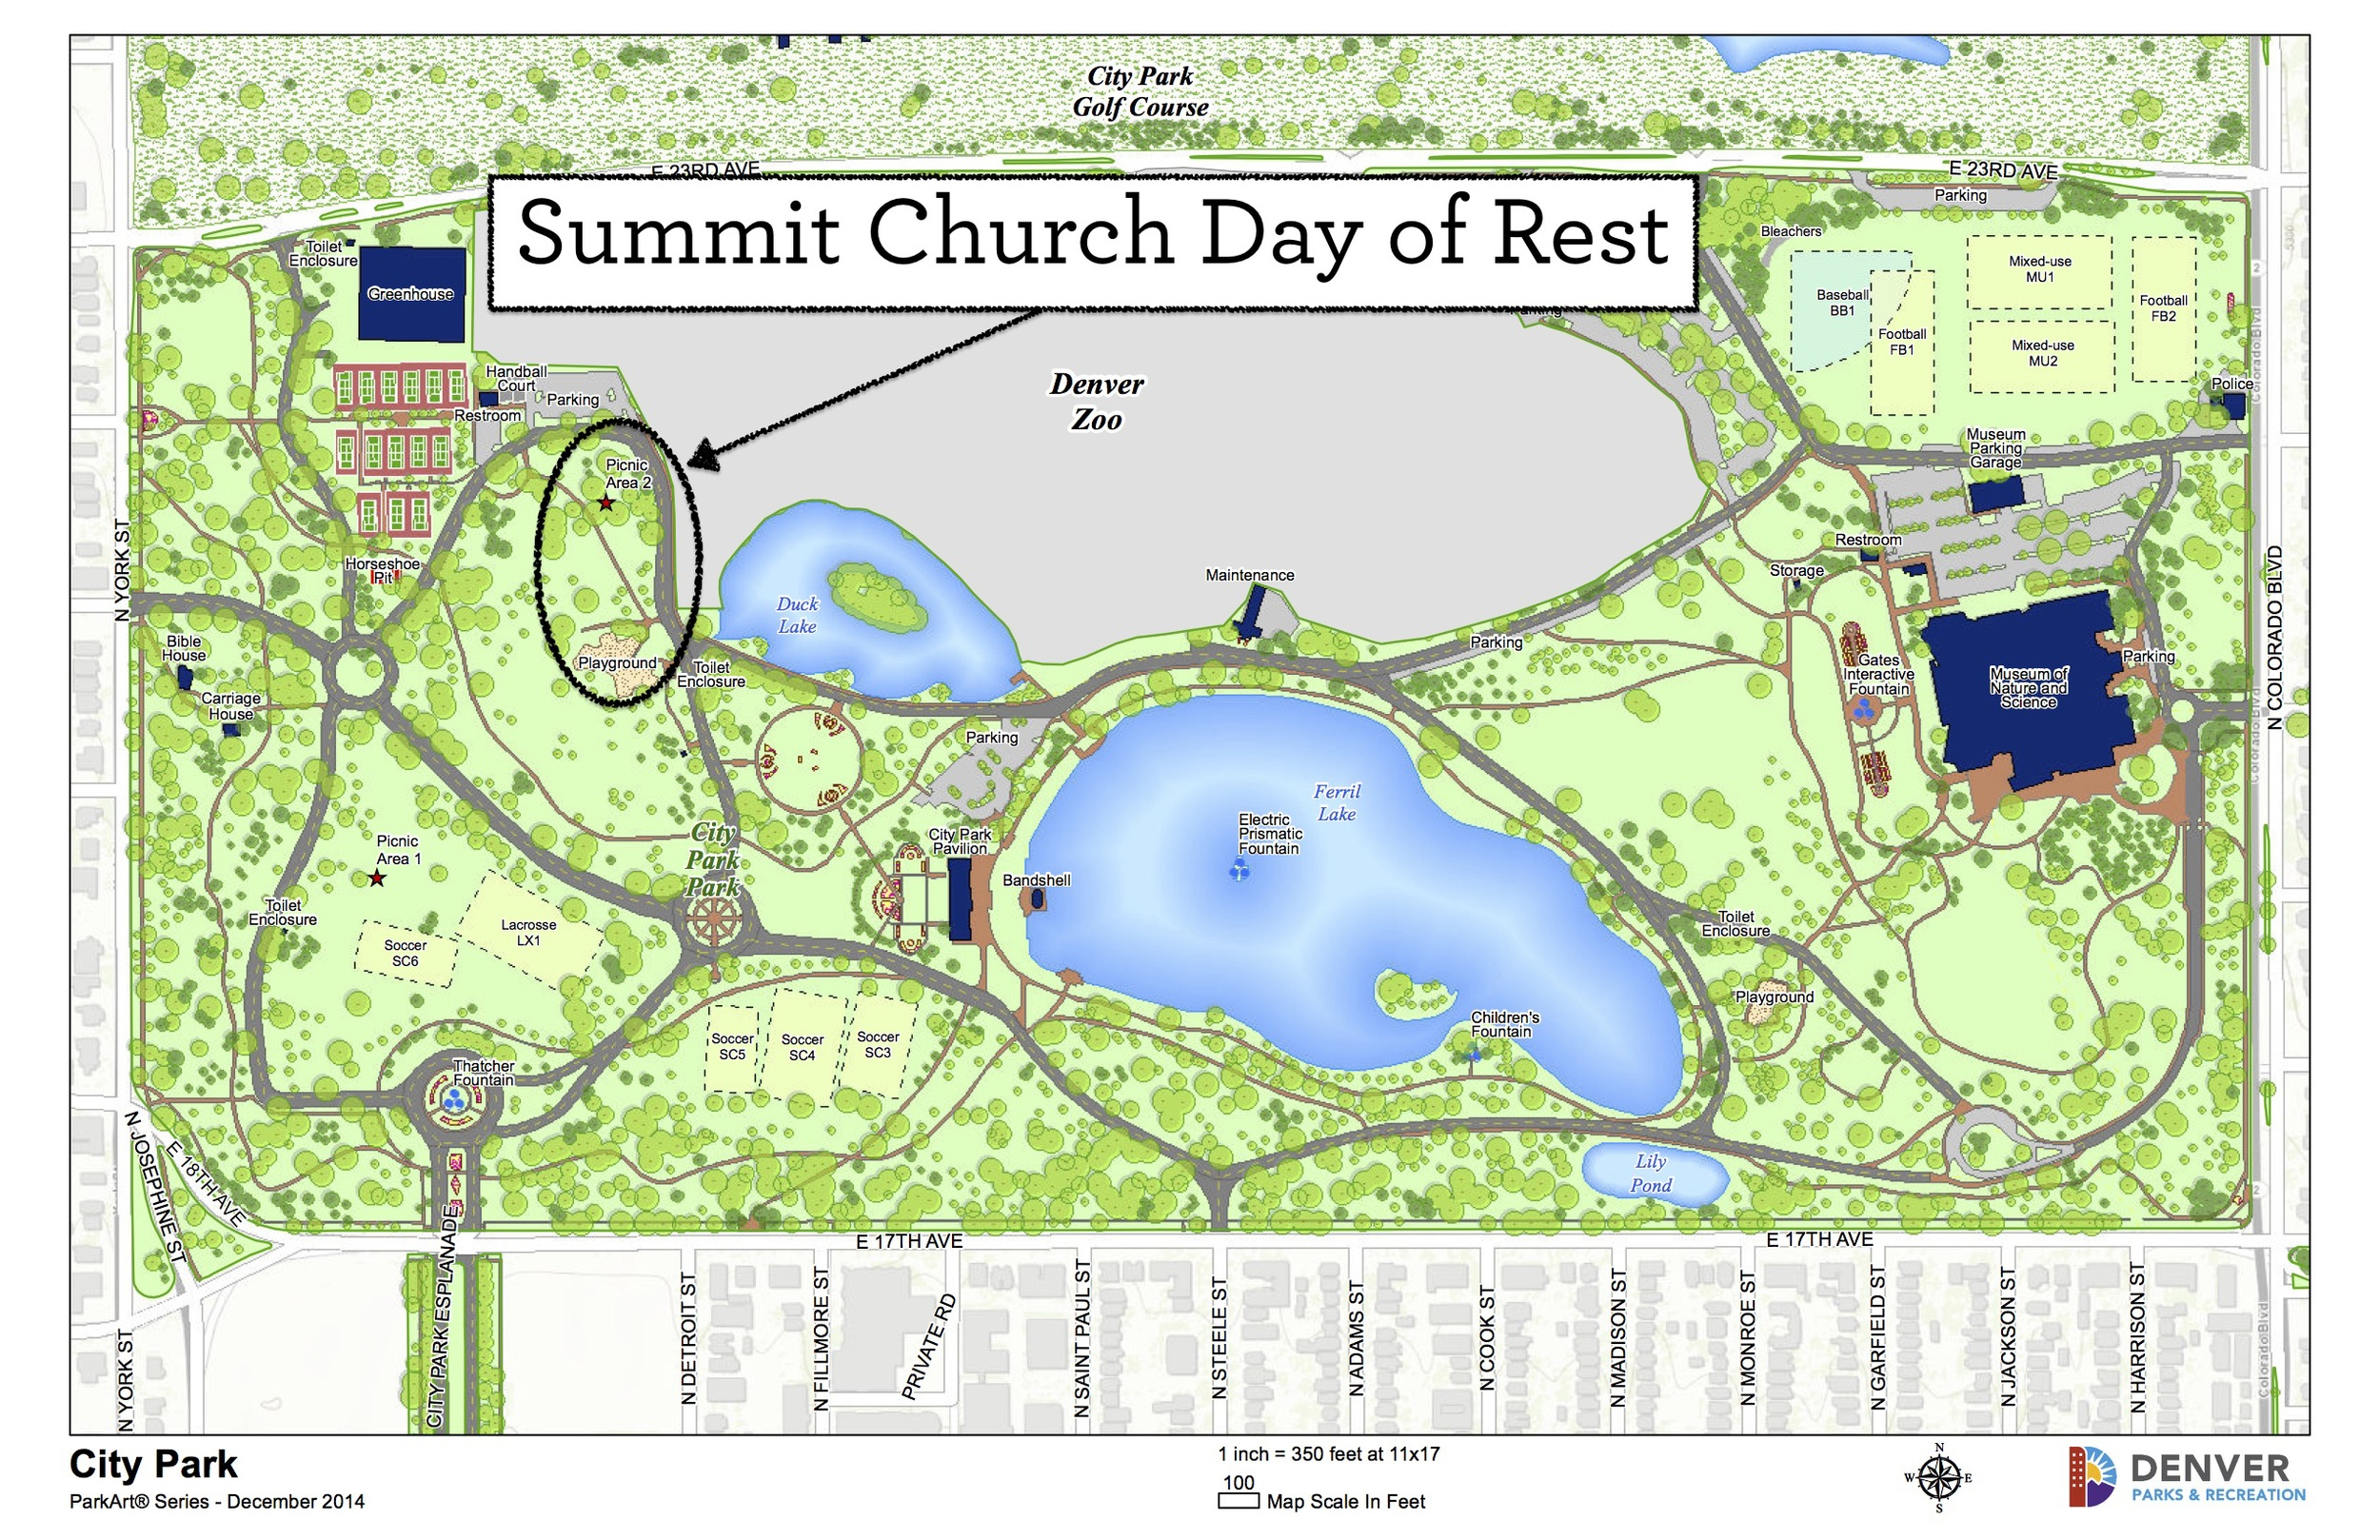 City Park Denver Map Day of Rest — The Summit Church